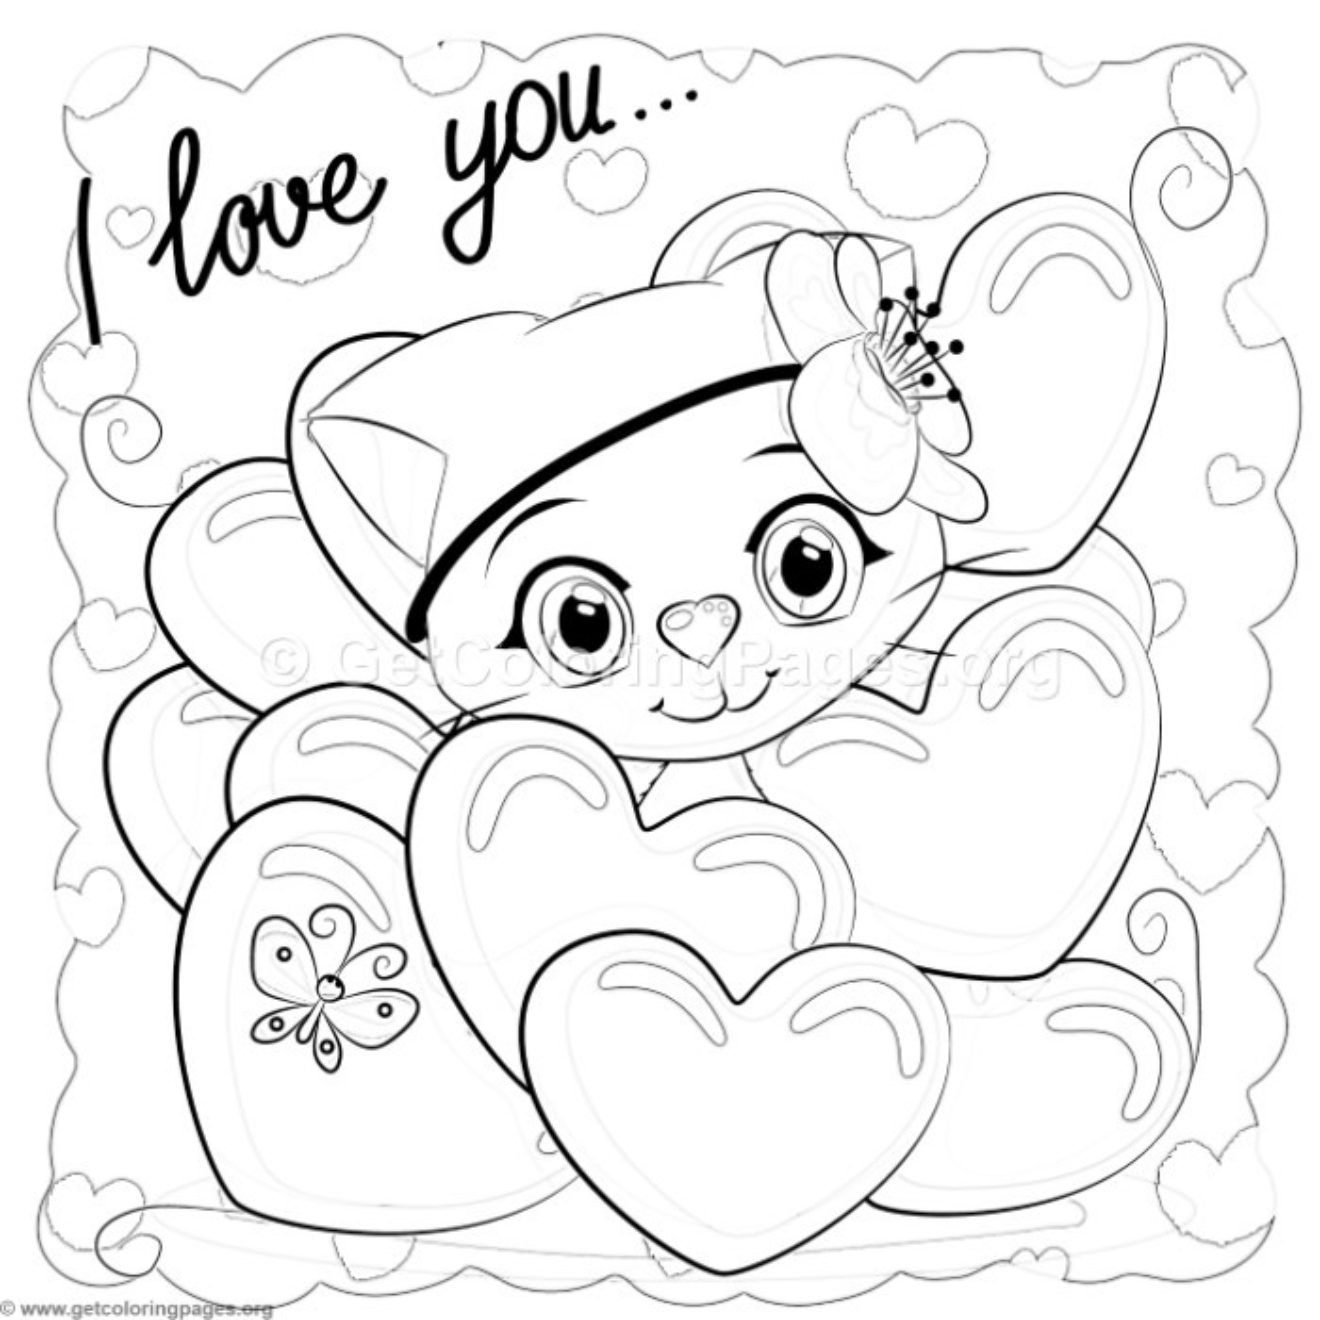 I Love You Little Cat Coloring Pages Getcoloringpages Org Cat Coloring Page Valentine Coloring Pages Coloring Pages